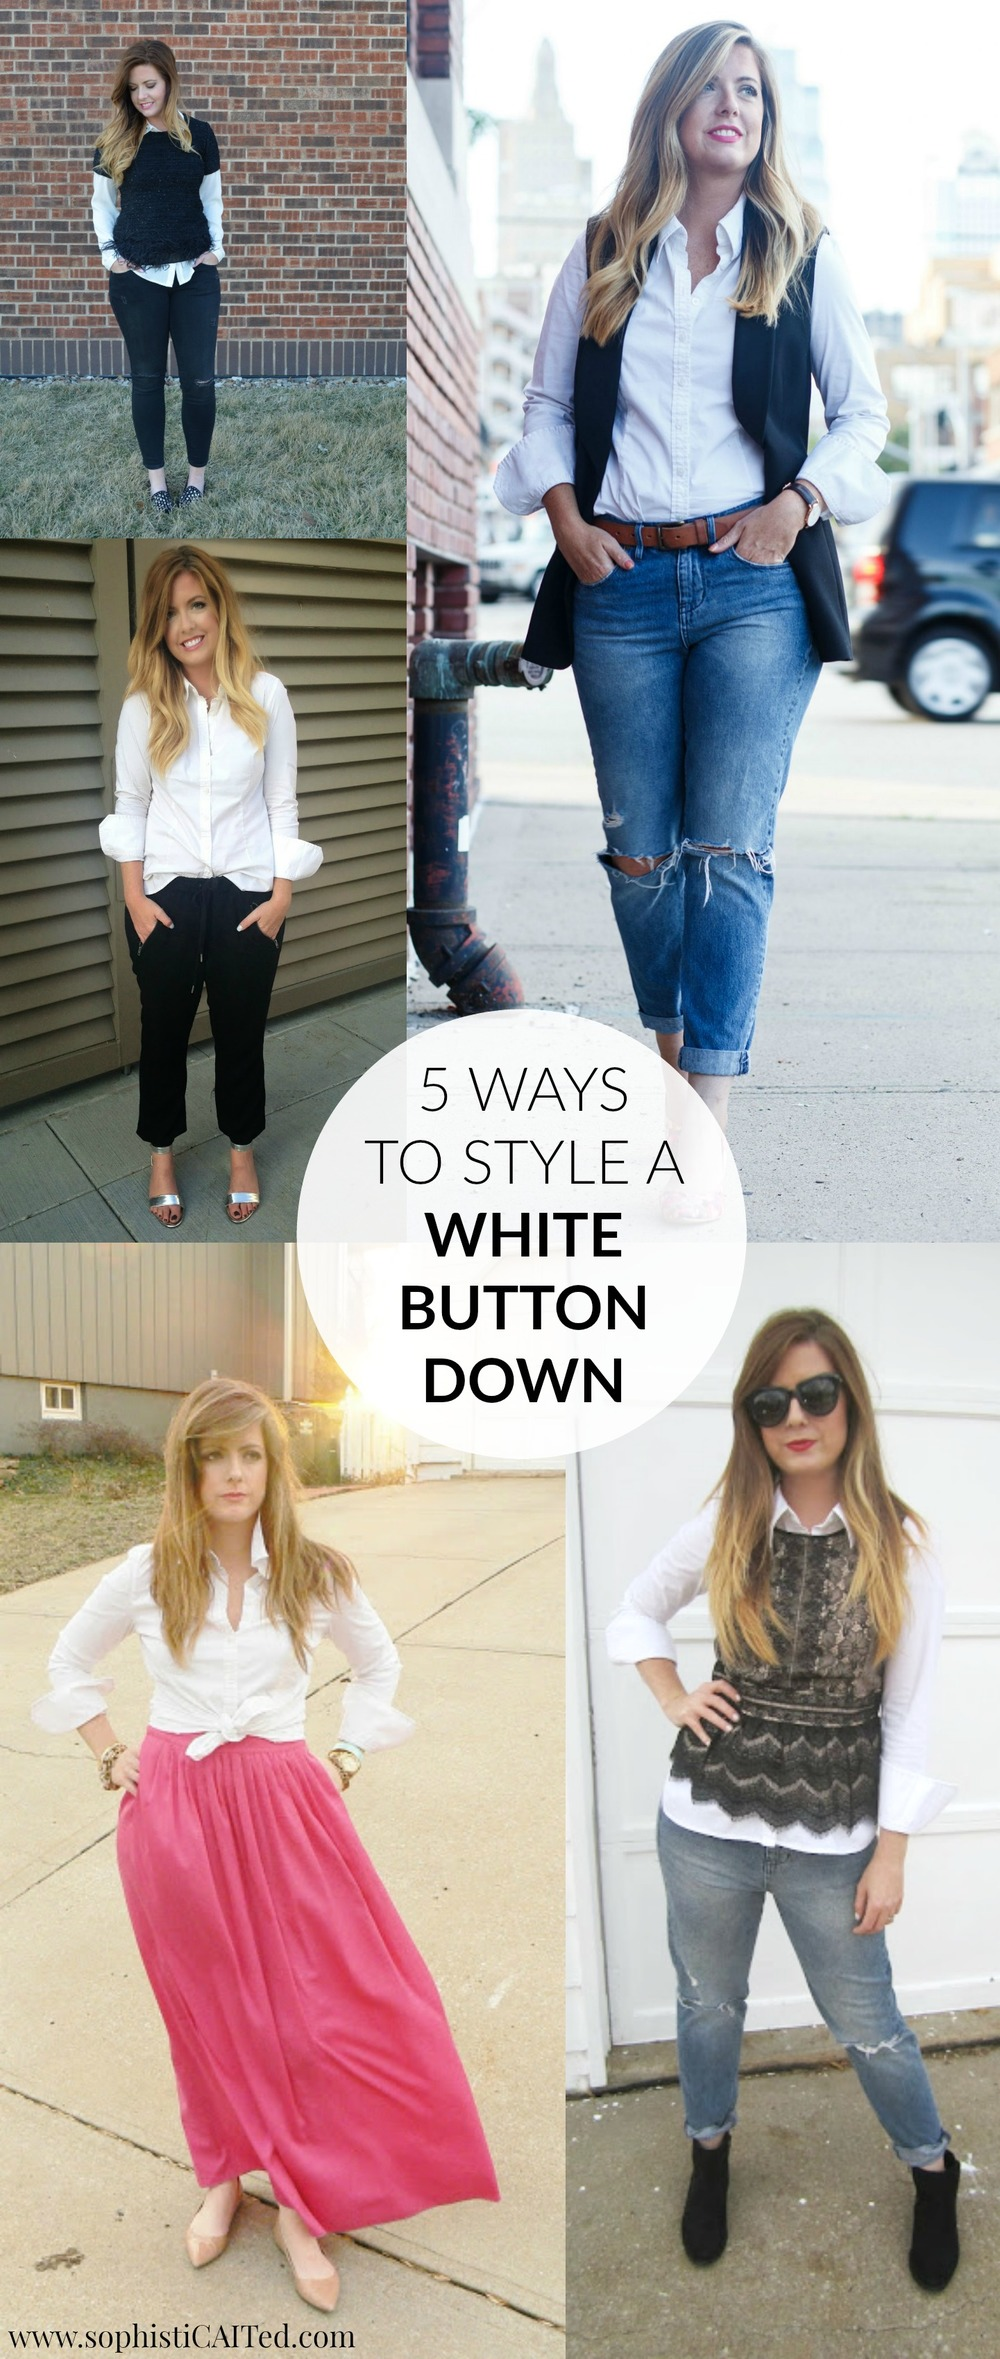 5 Ways to Style a White Button Down shirt